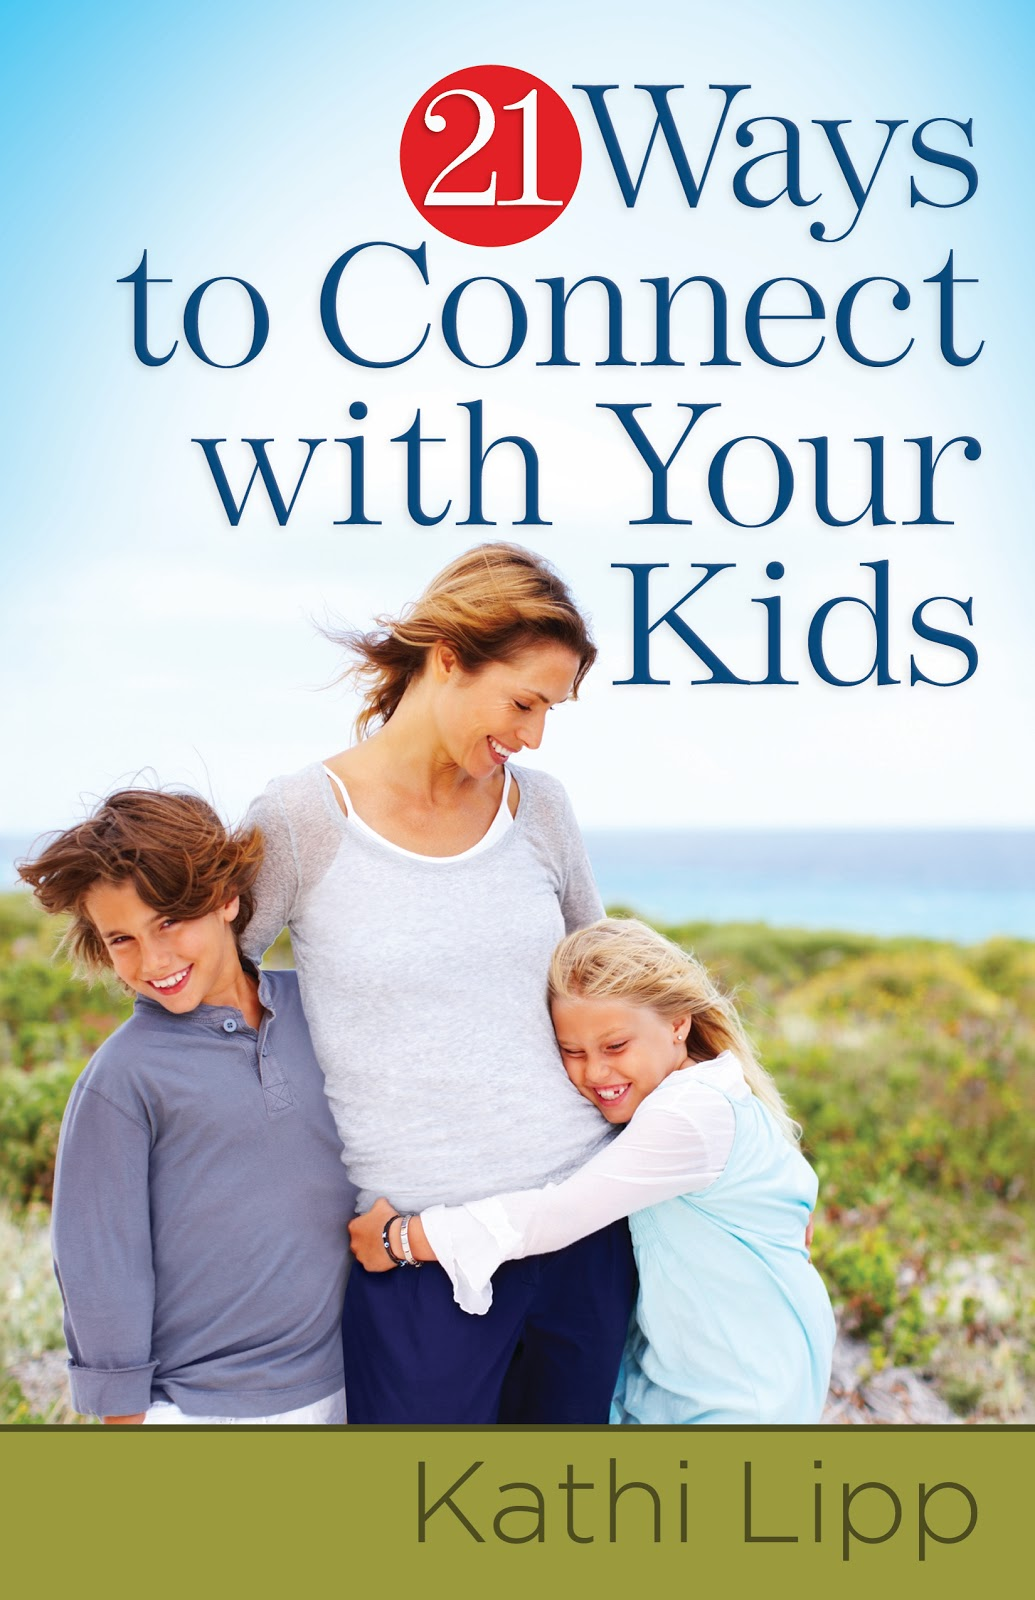 Lots of great ideas in this book to help you strengthen your family and connect with your kids!